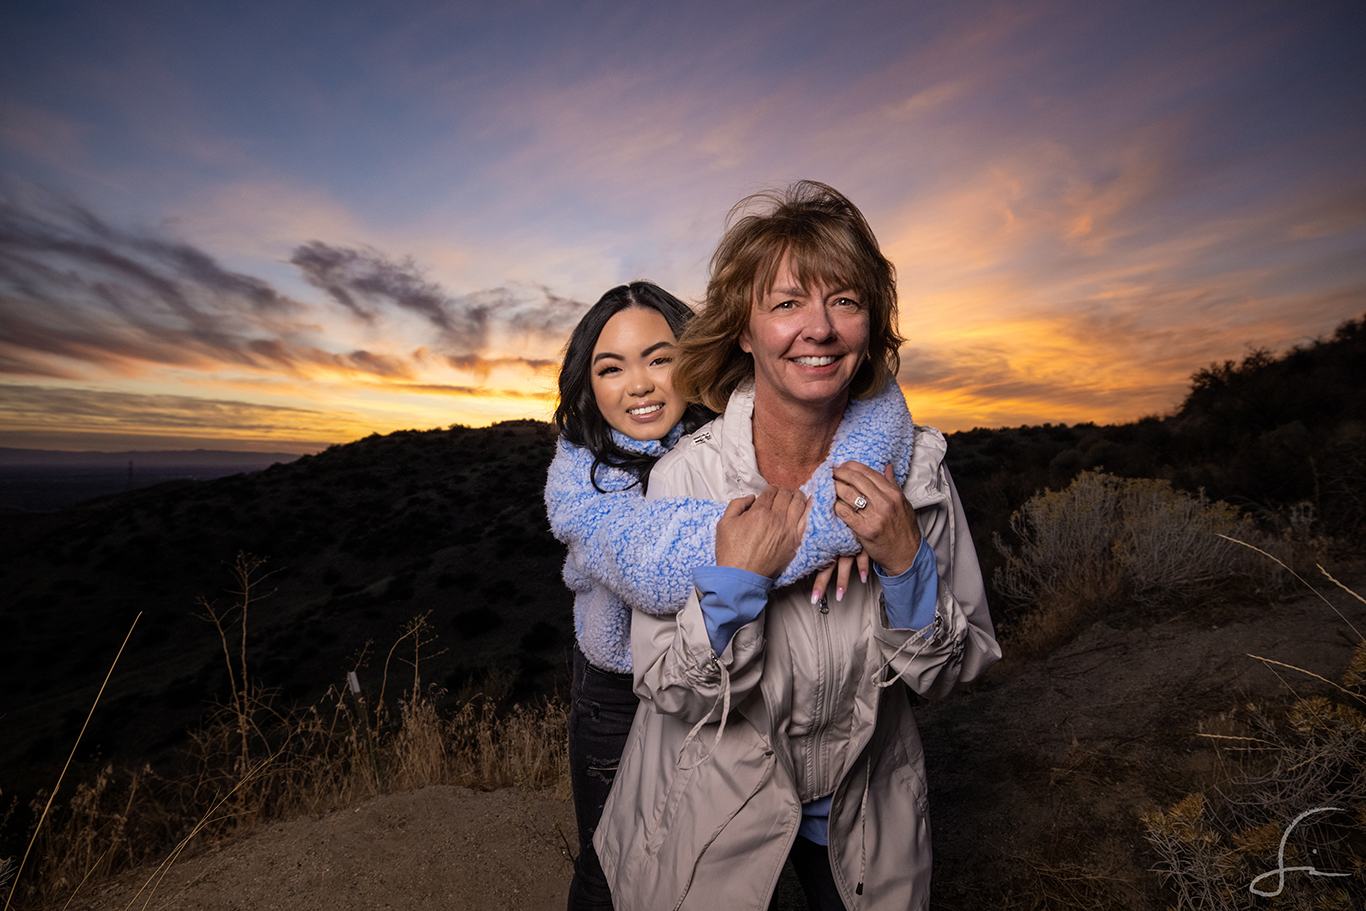 Mother and Daughter standing together for a picture in the hills.